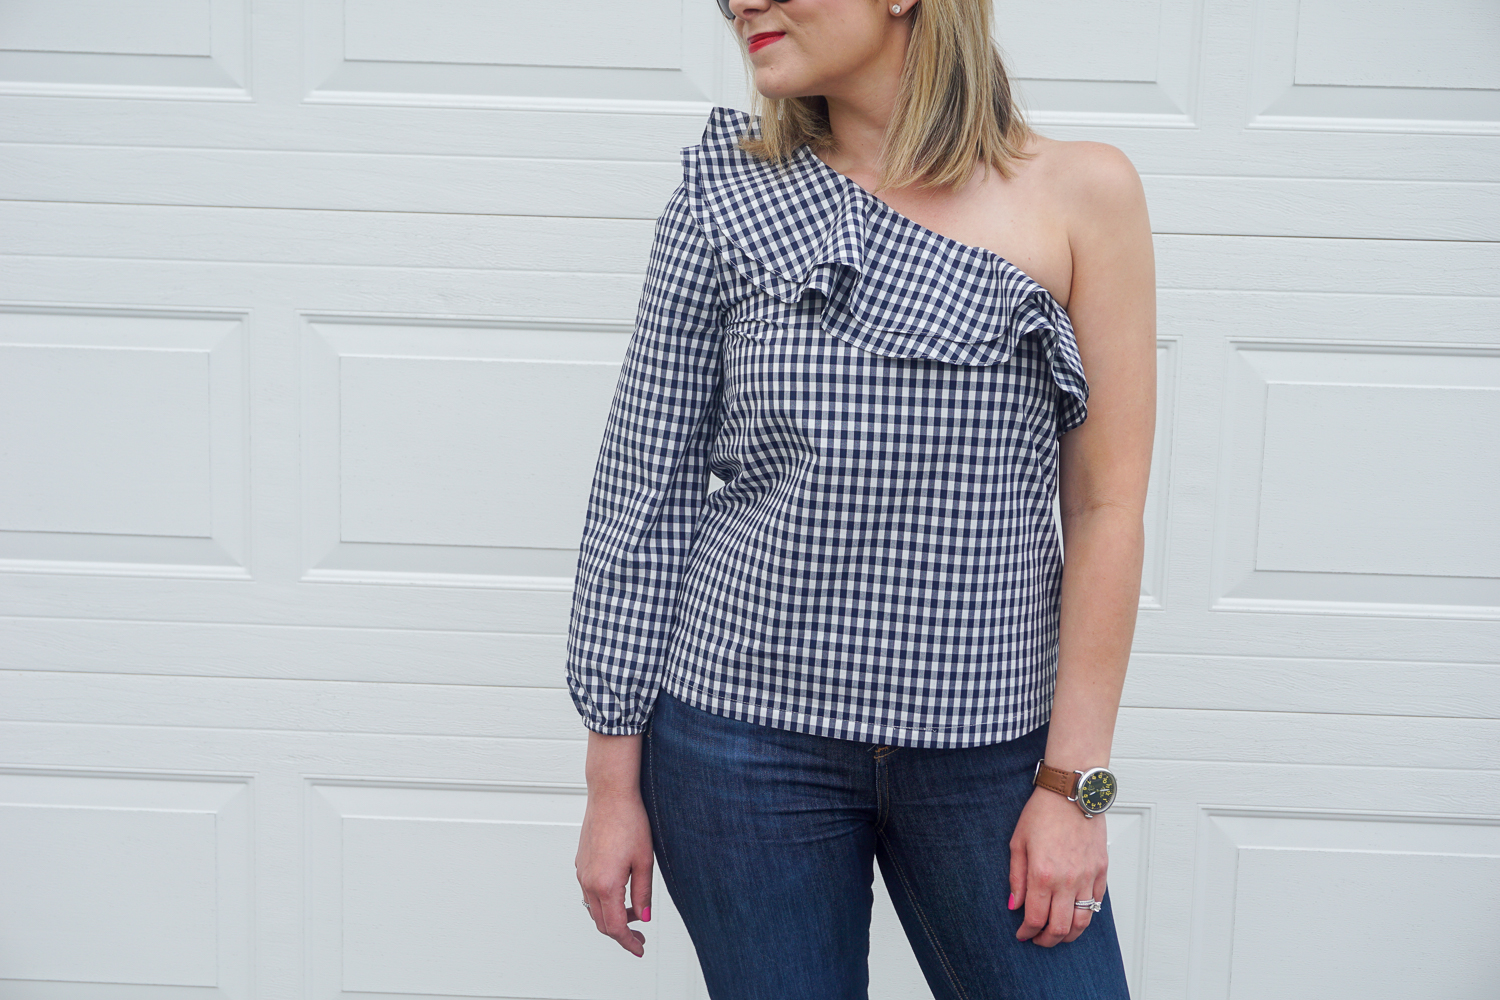 Gingham top